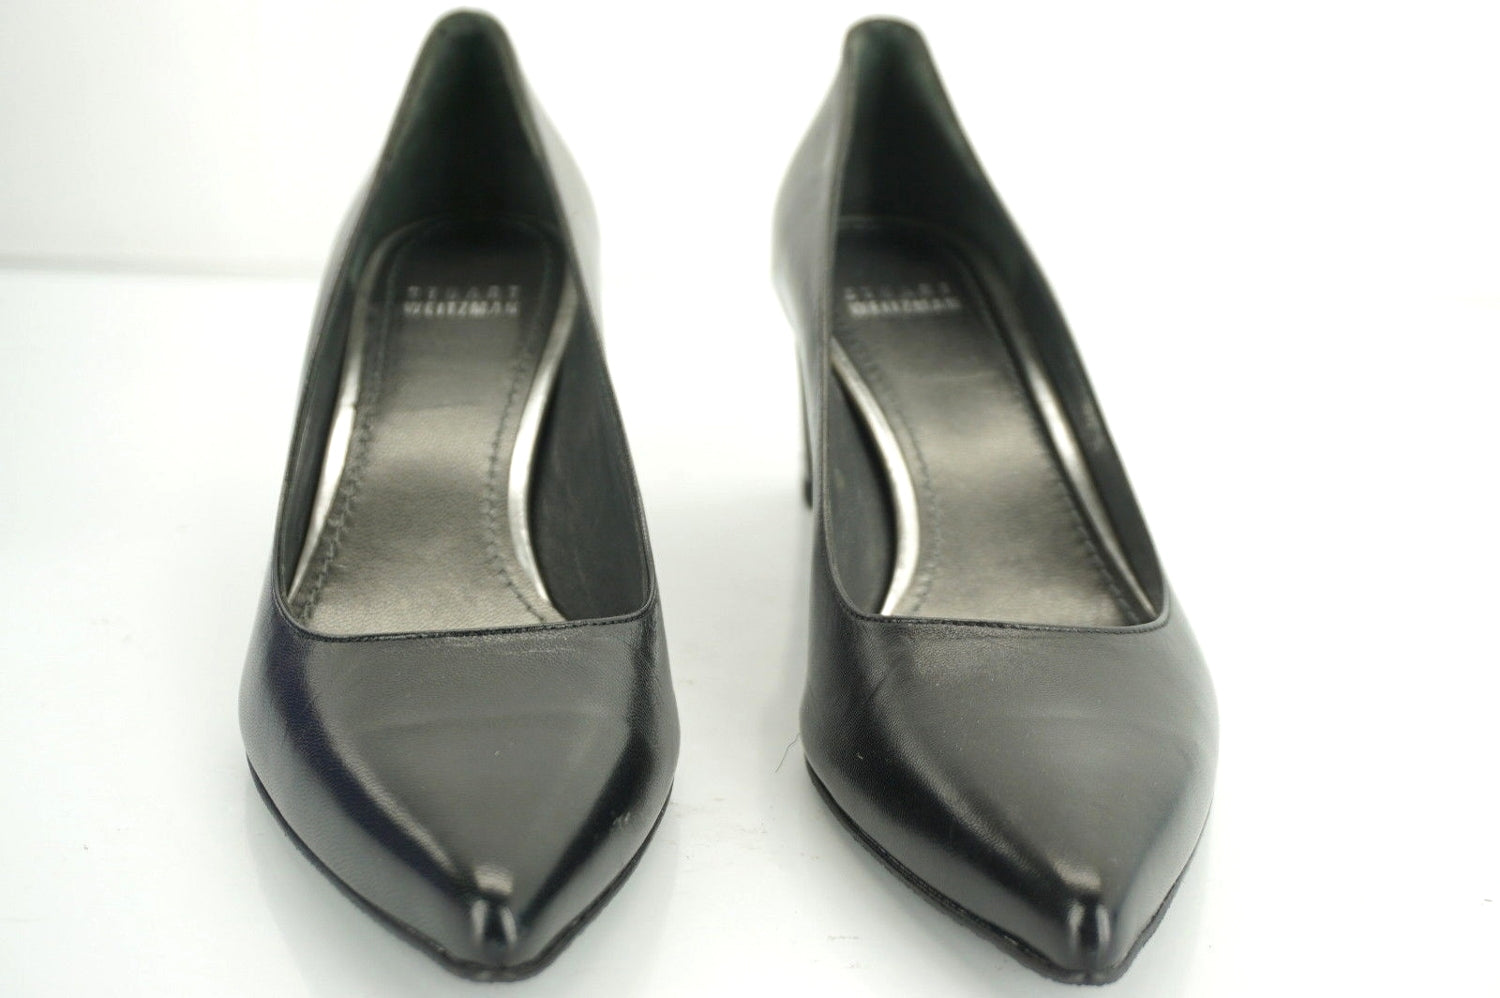 Stuart Weitzman Black Leather Classic Pointy Toe Heels Pumps SZ 8.5 Narrow $385